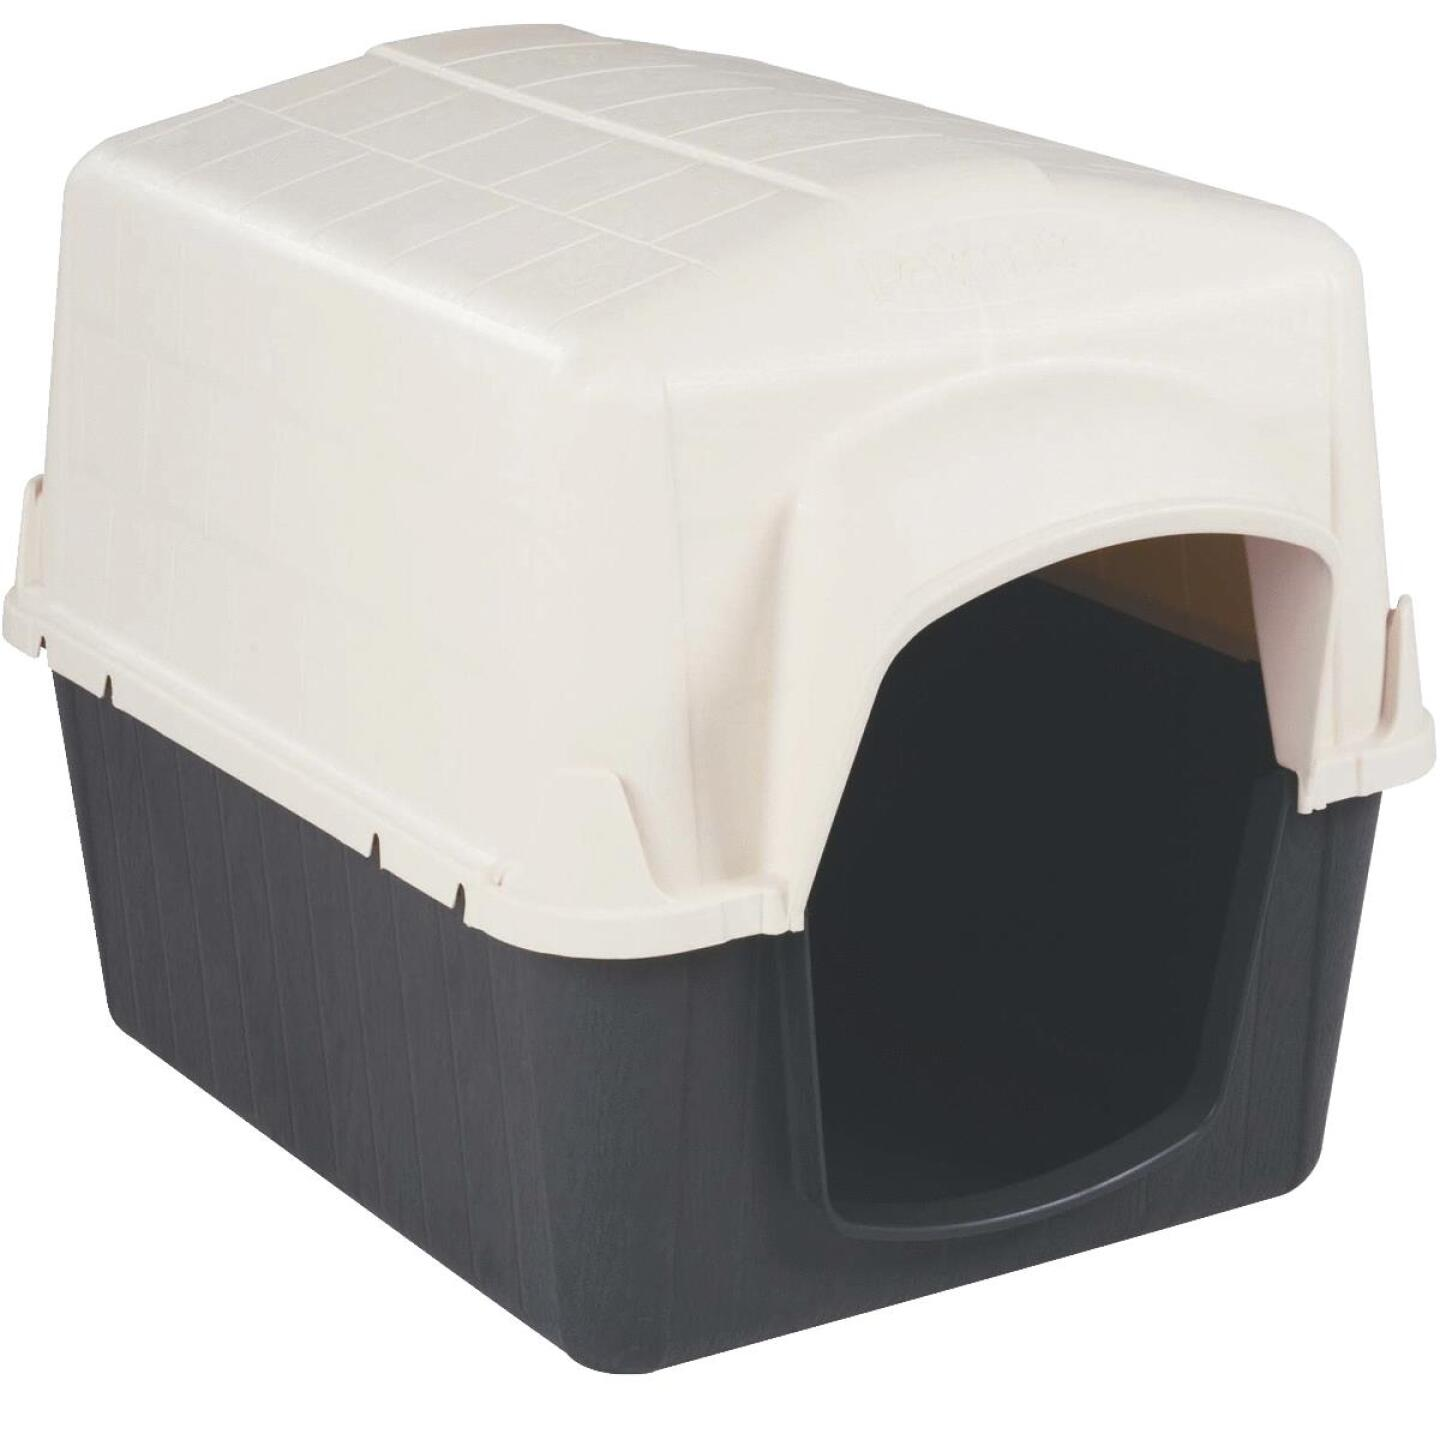 Petmate PetBarn III Almond & Cocoa Large Dog House For 50 to 90 Lb. Dogs Image 1